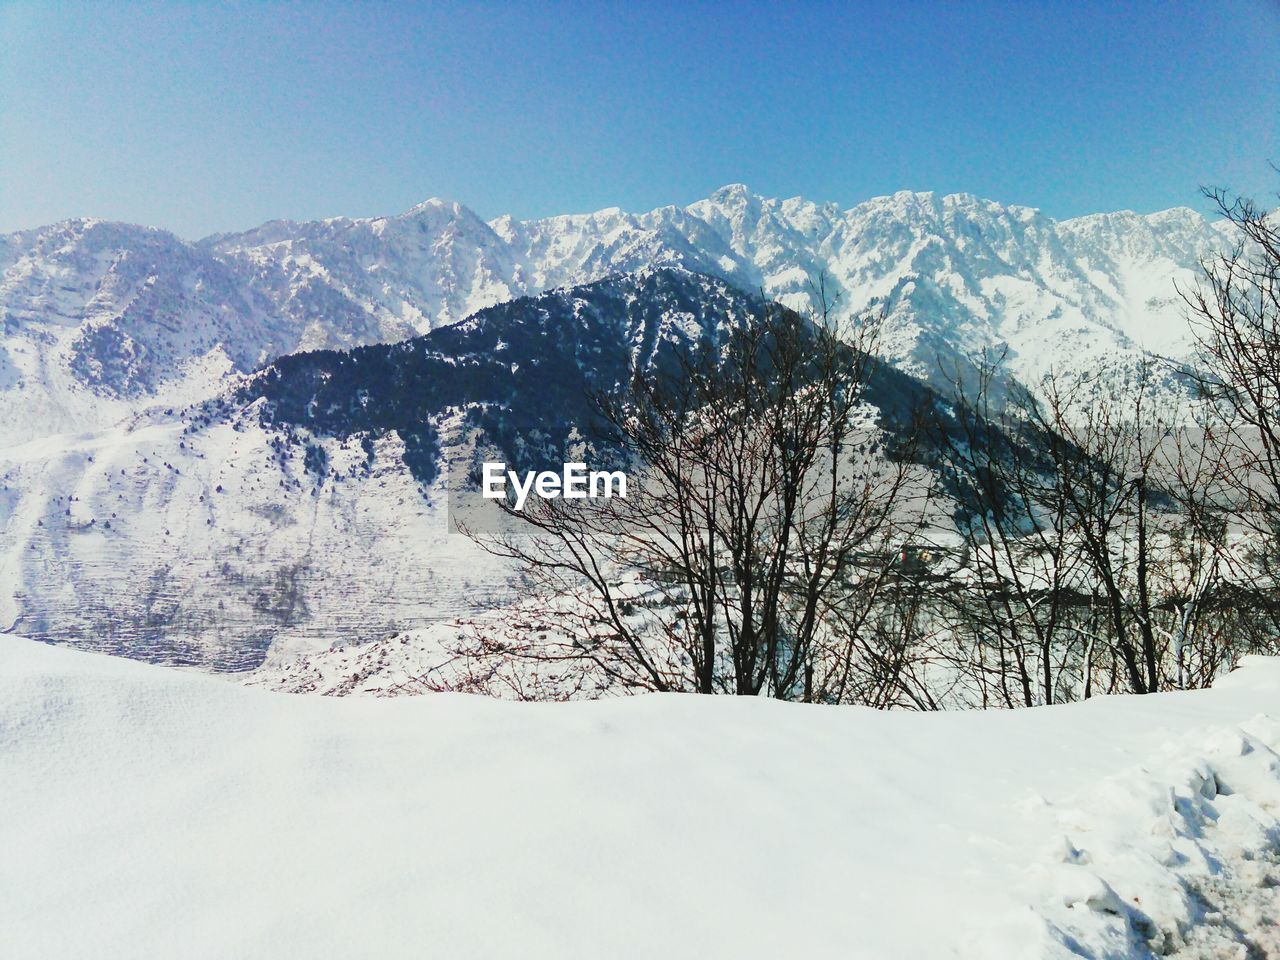 snow, winter, cold temperature, mountain, nature, weather, beauty in nature, tranquil scene, tranquility, frozen, scenics, white color, outdoors, landscape, cold, snowcapped mountain, no people, day, mountain range, blue, snowdrift, sky, bare tree, clear sky, tree